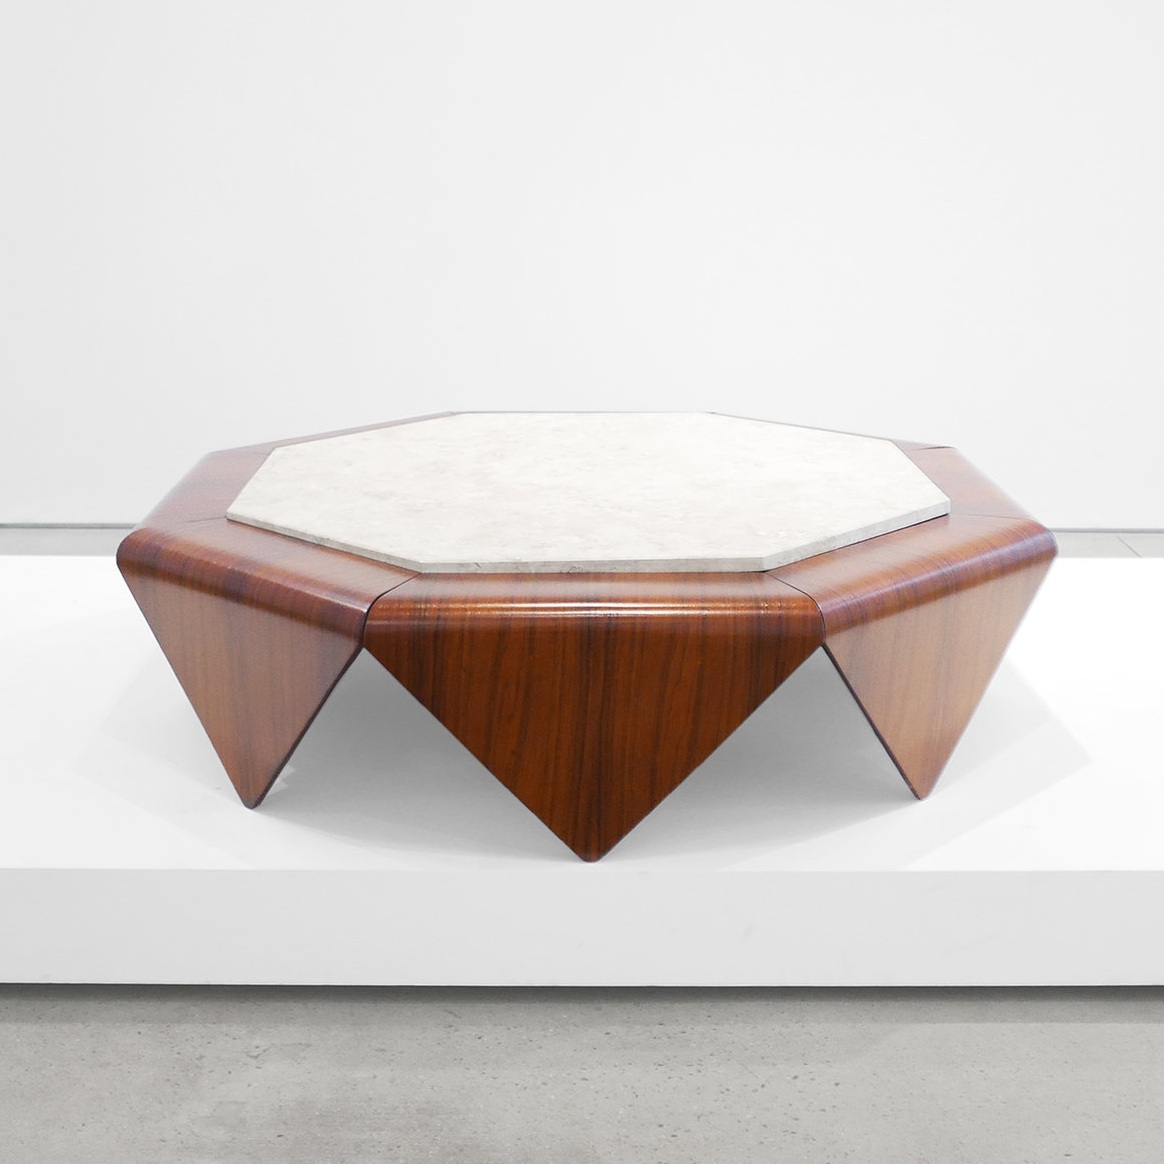 jorge zalszupin 'petalas' coffee table with marble inlay $22,500